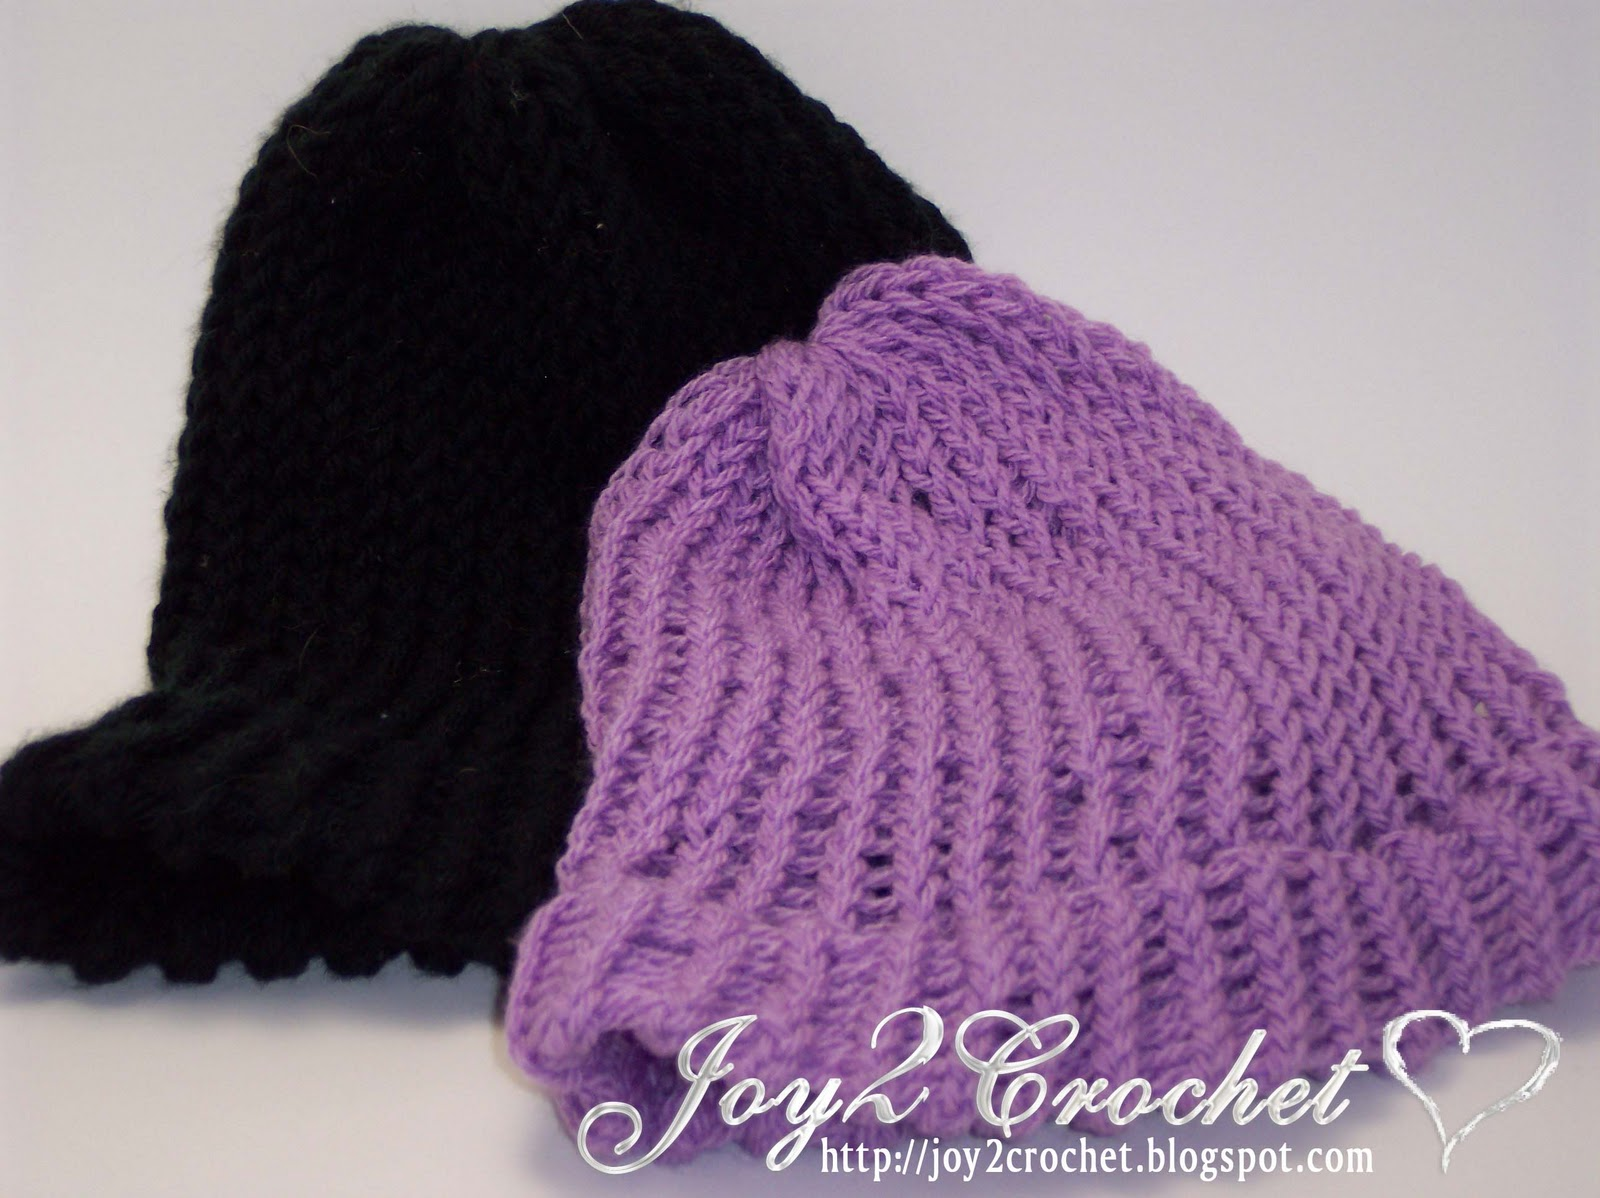 Crocheting Loom : Joy 2 Crochet: Basic Knitting Loom Hats